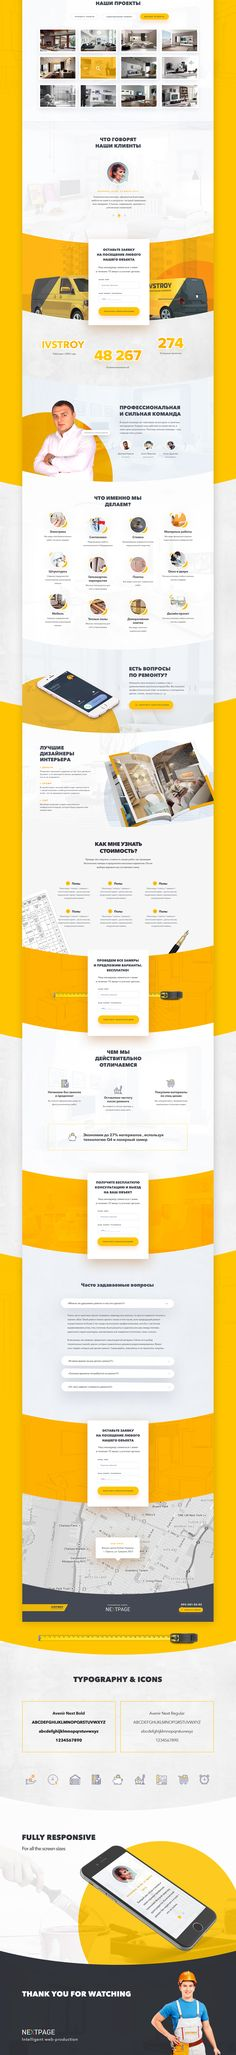 Meet a brand new IVSTROY landing page. Easy and truly eye-catching this one was…